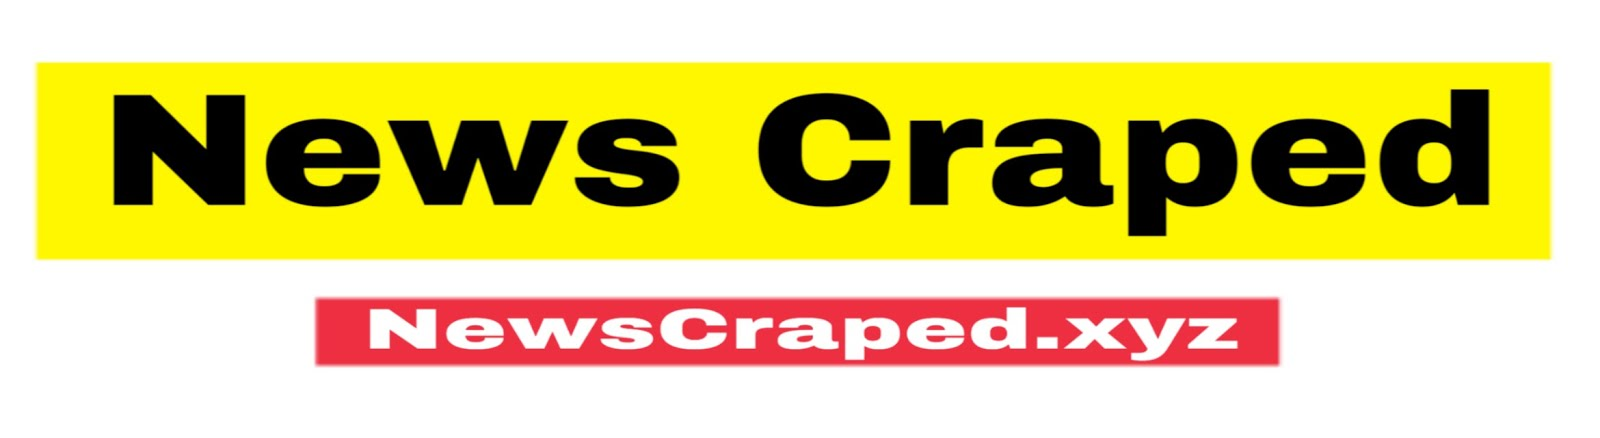 News Craped